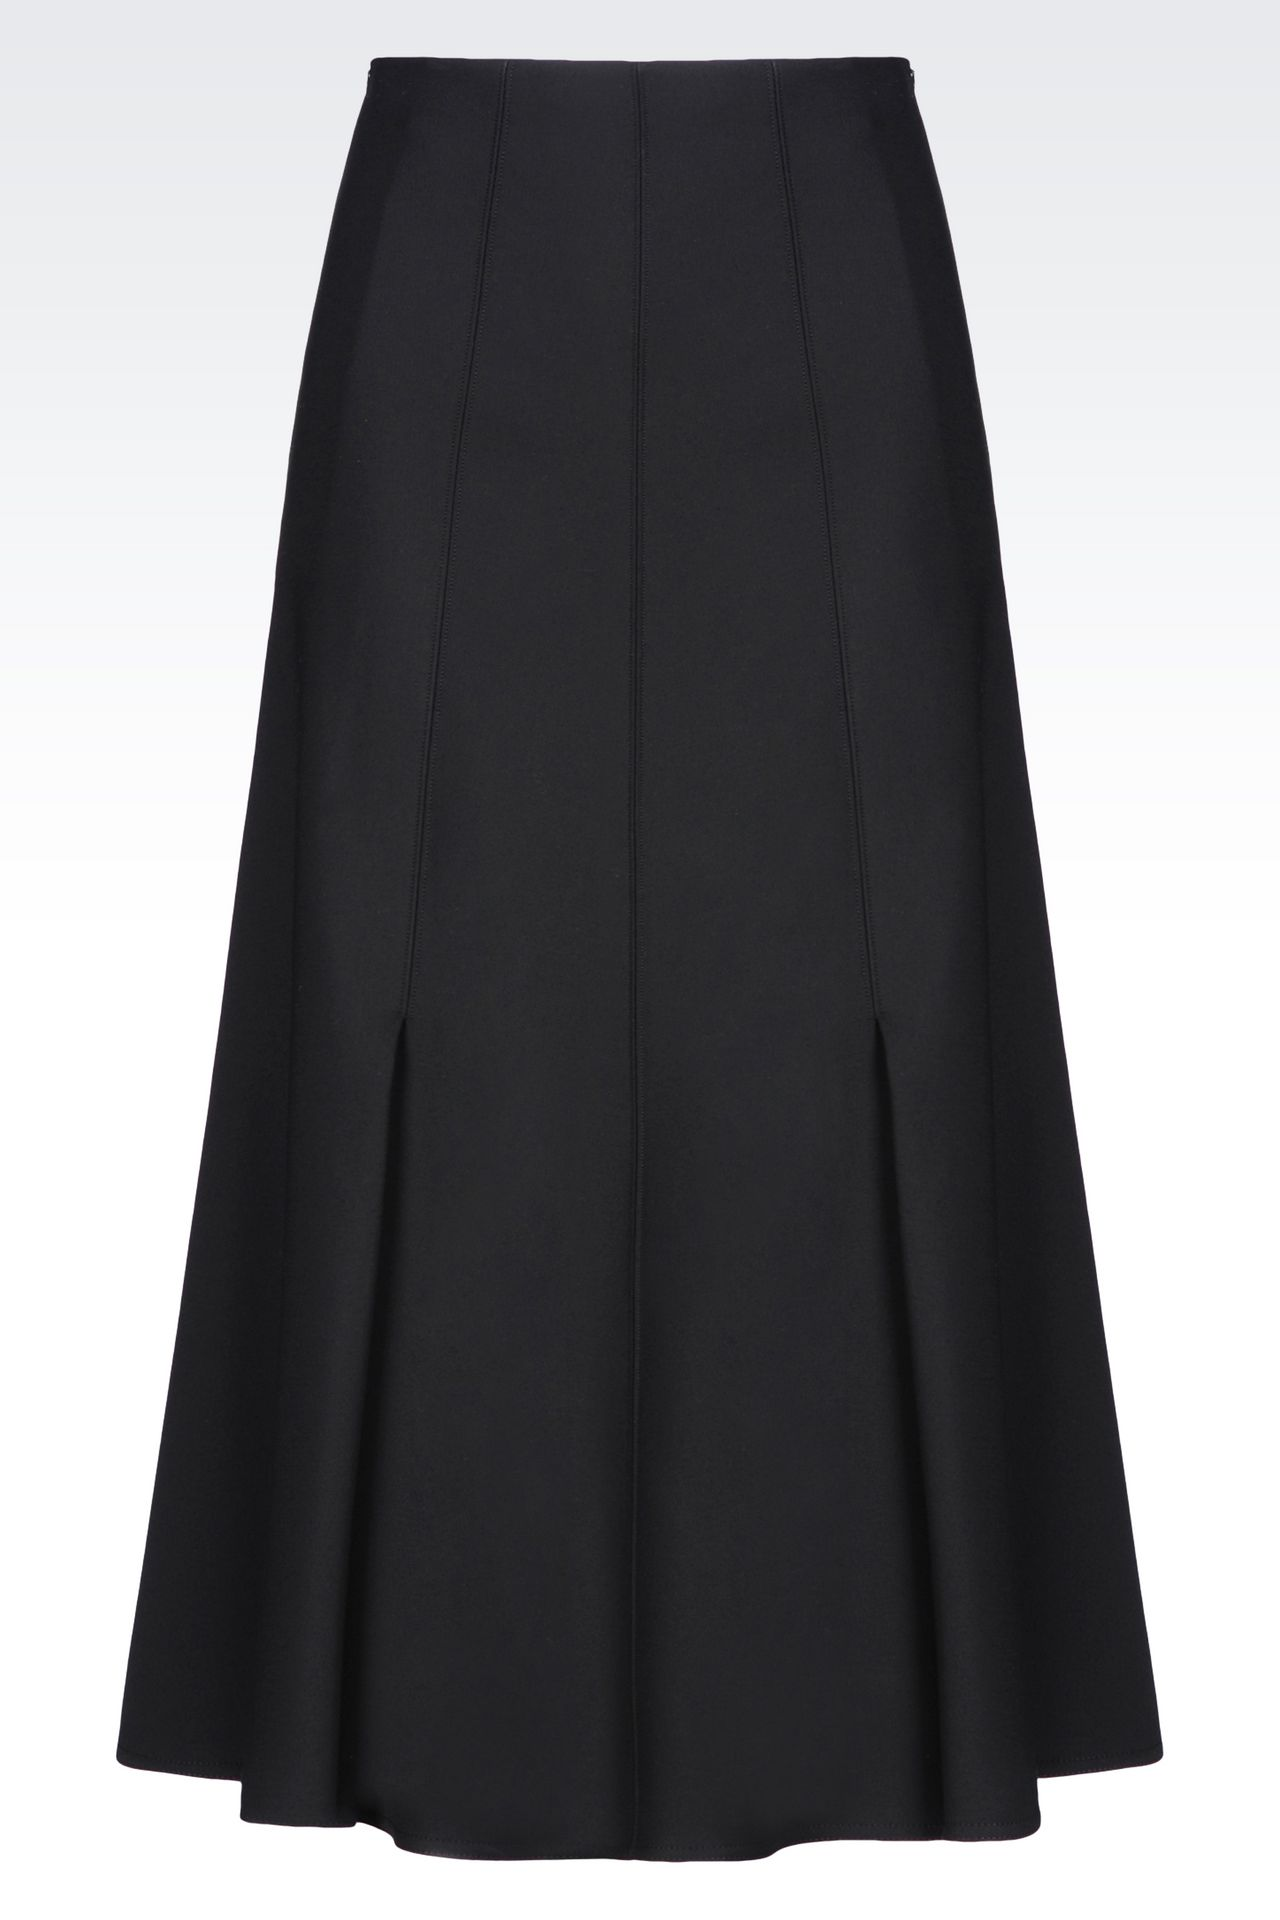 SKIRT IN SATIN: Skirts Women by Armani - 0